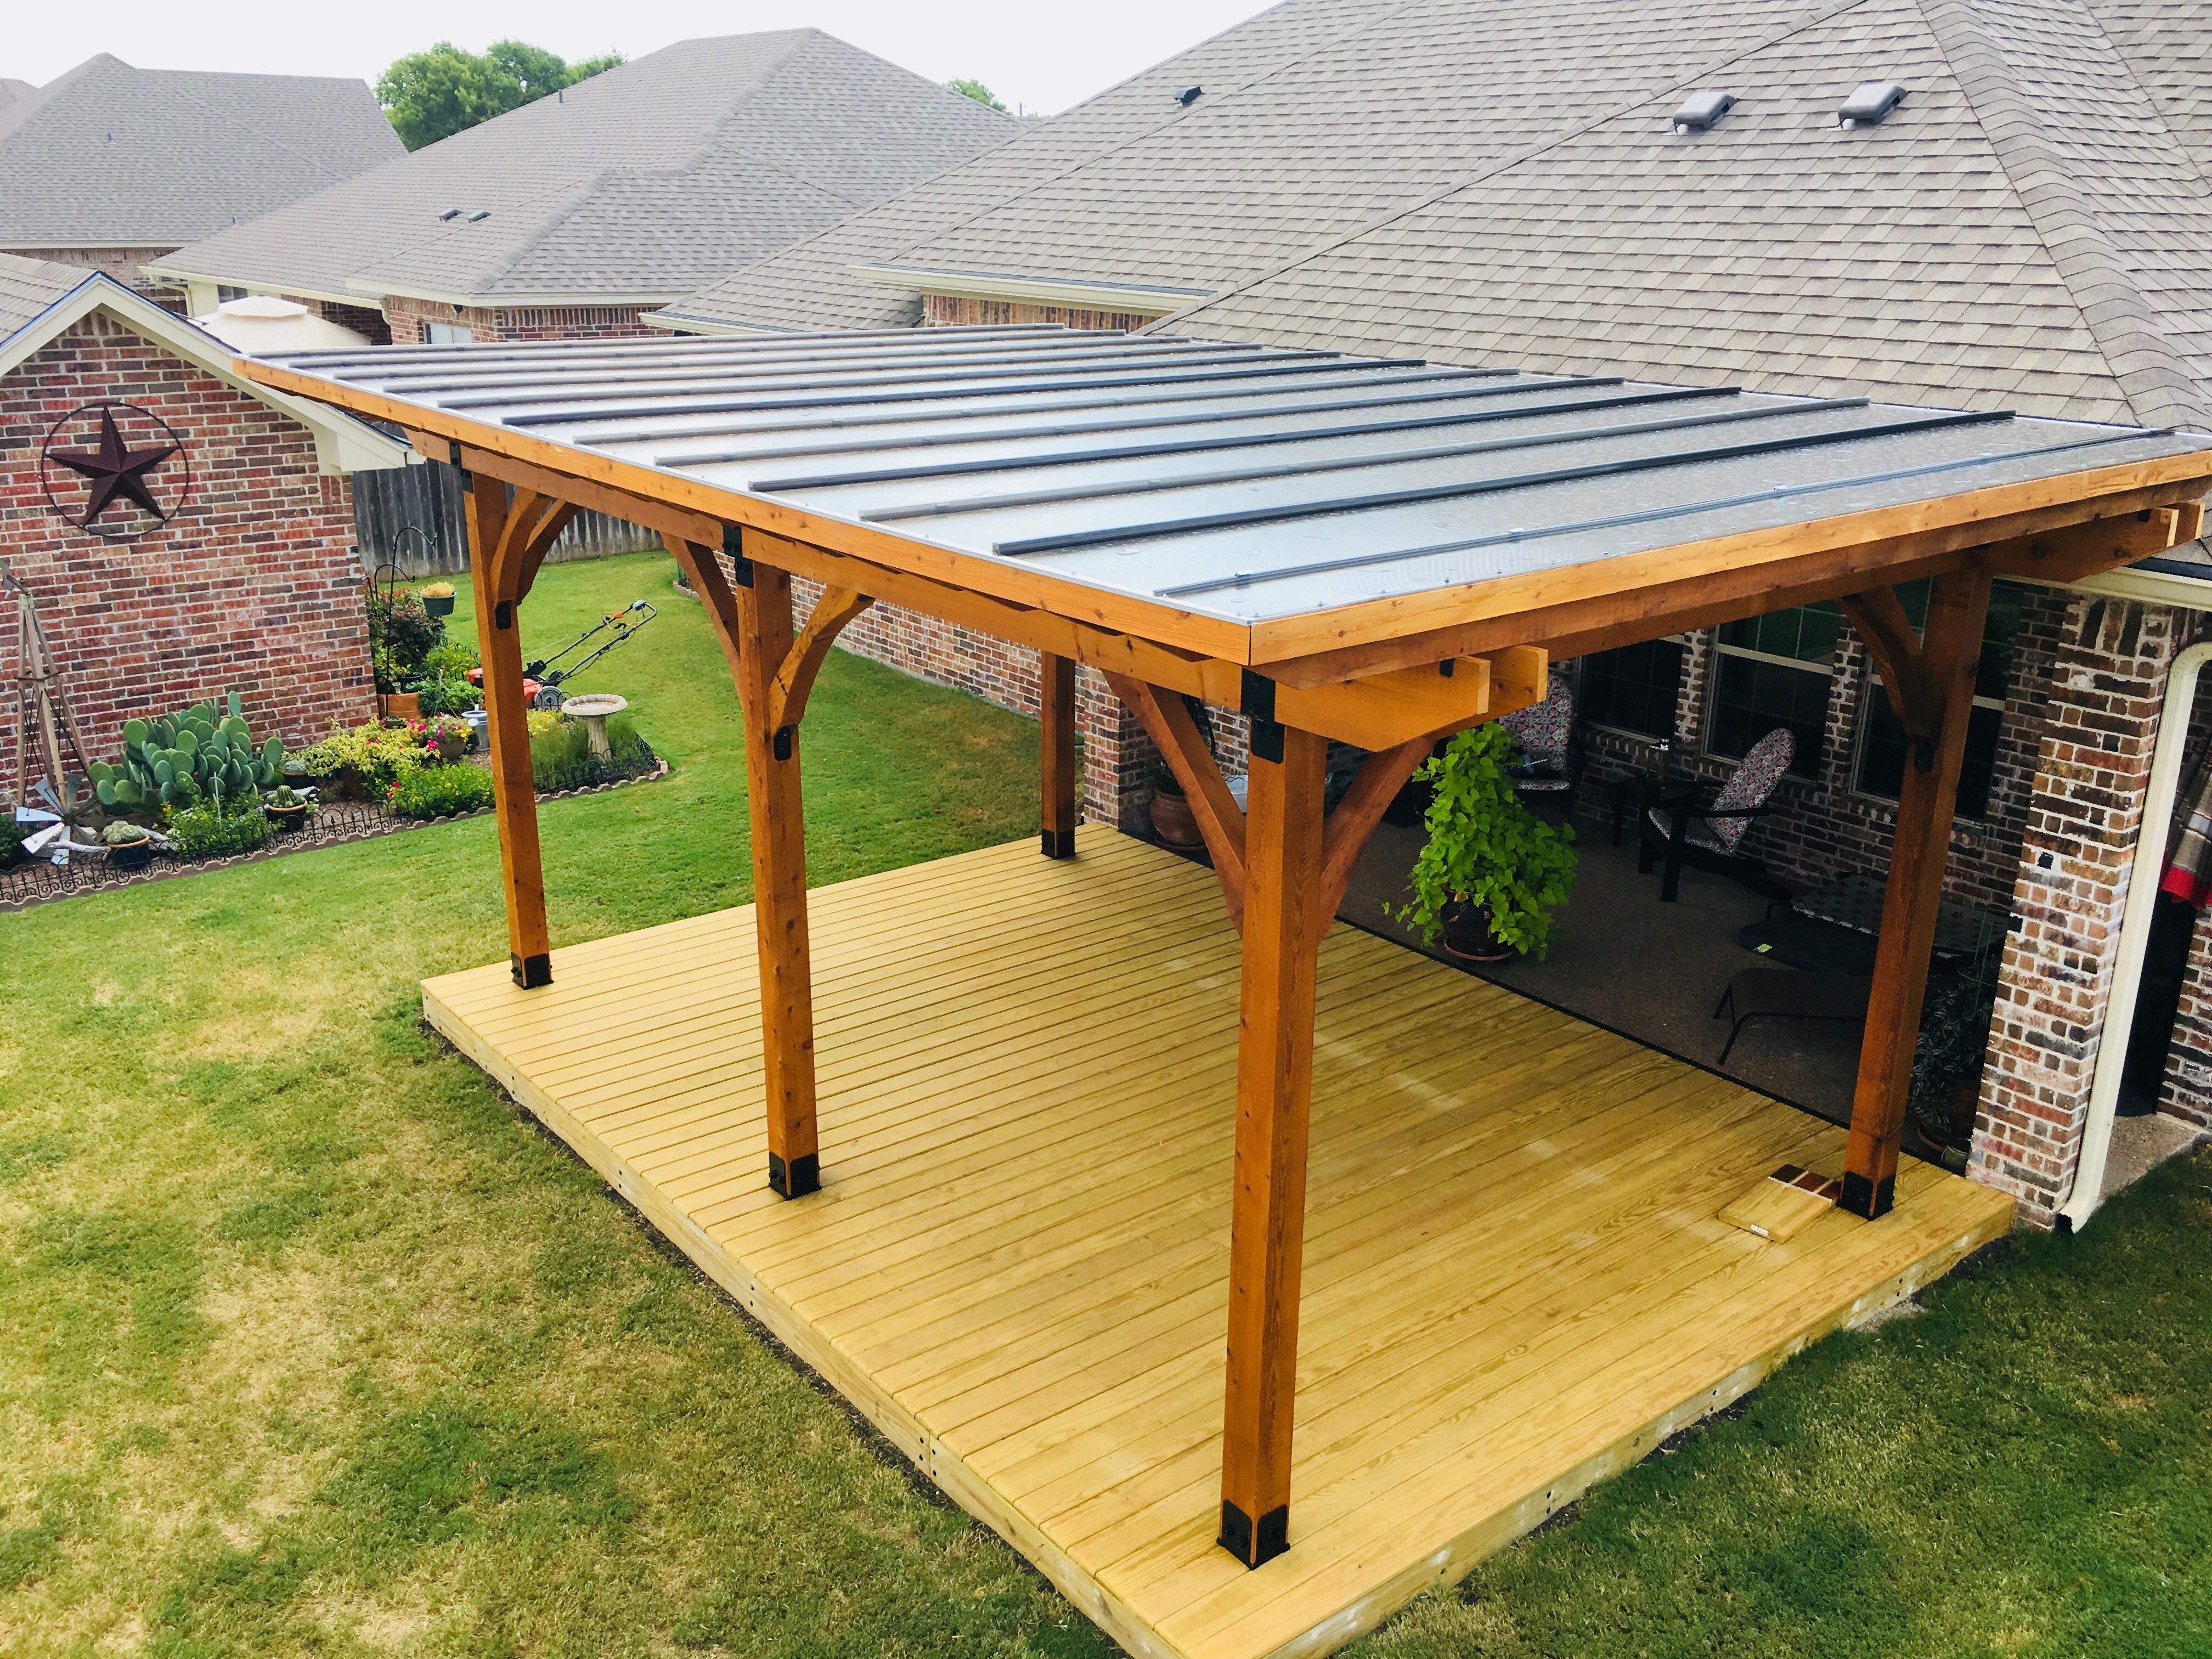 cusom pergola with metal roof and deck